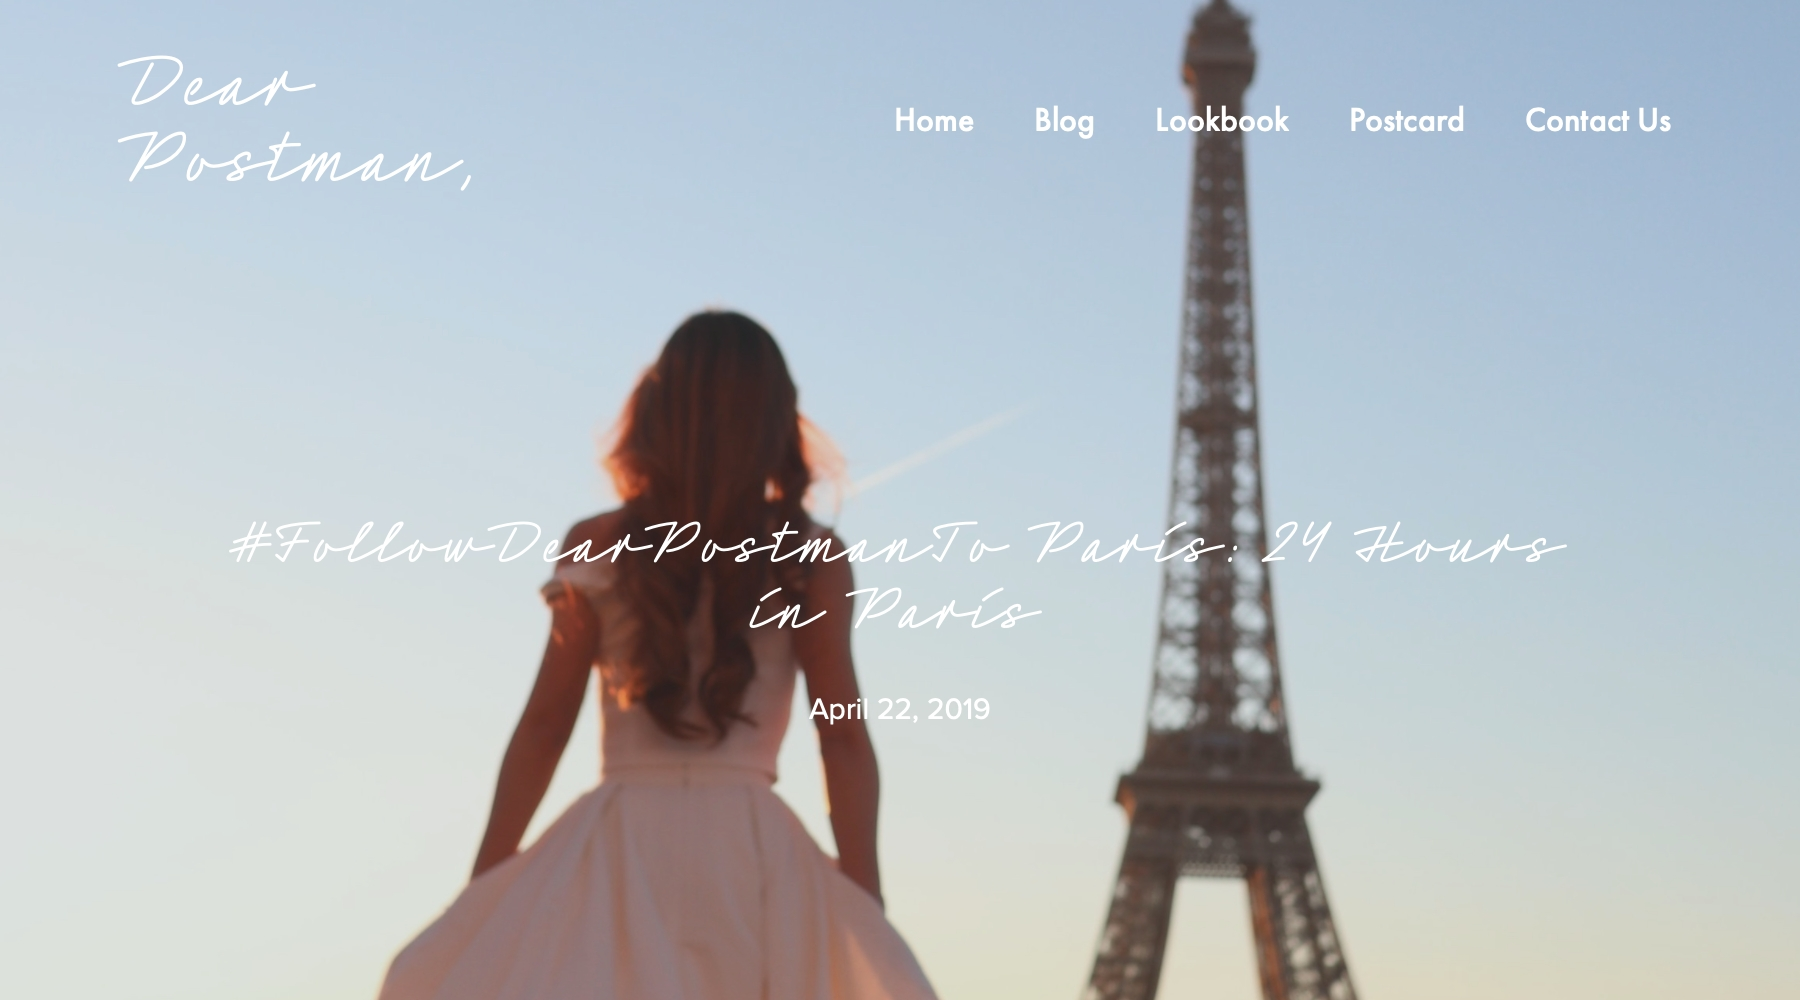 #FollowDearPostmanTo Paris: 24 Hours in Paris